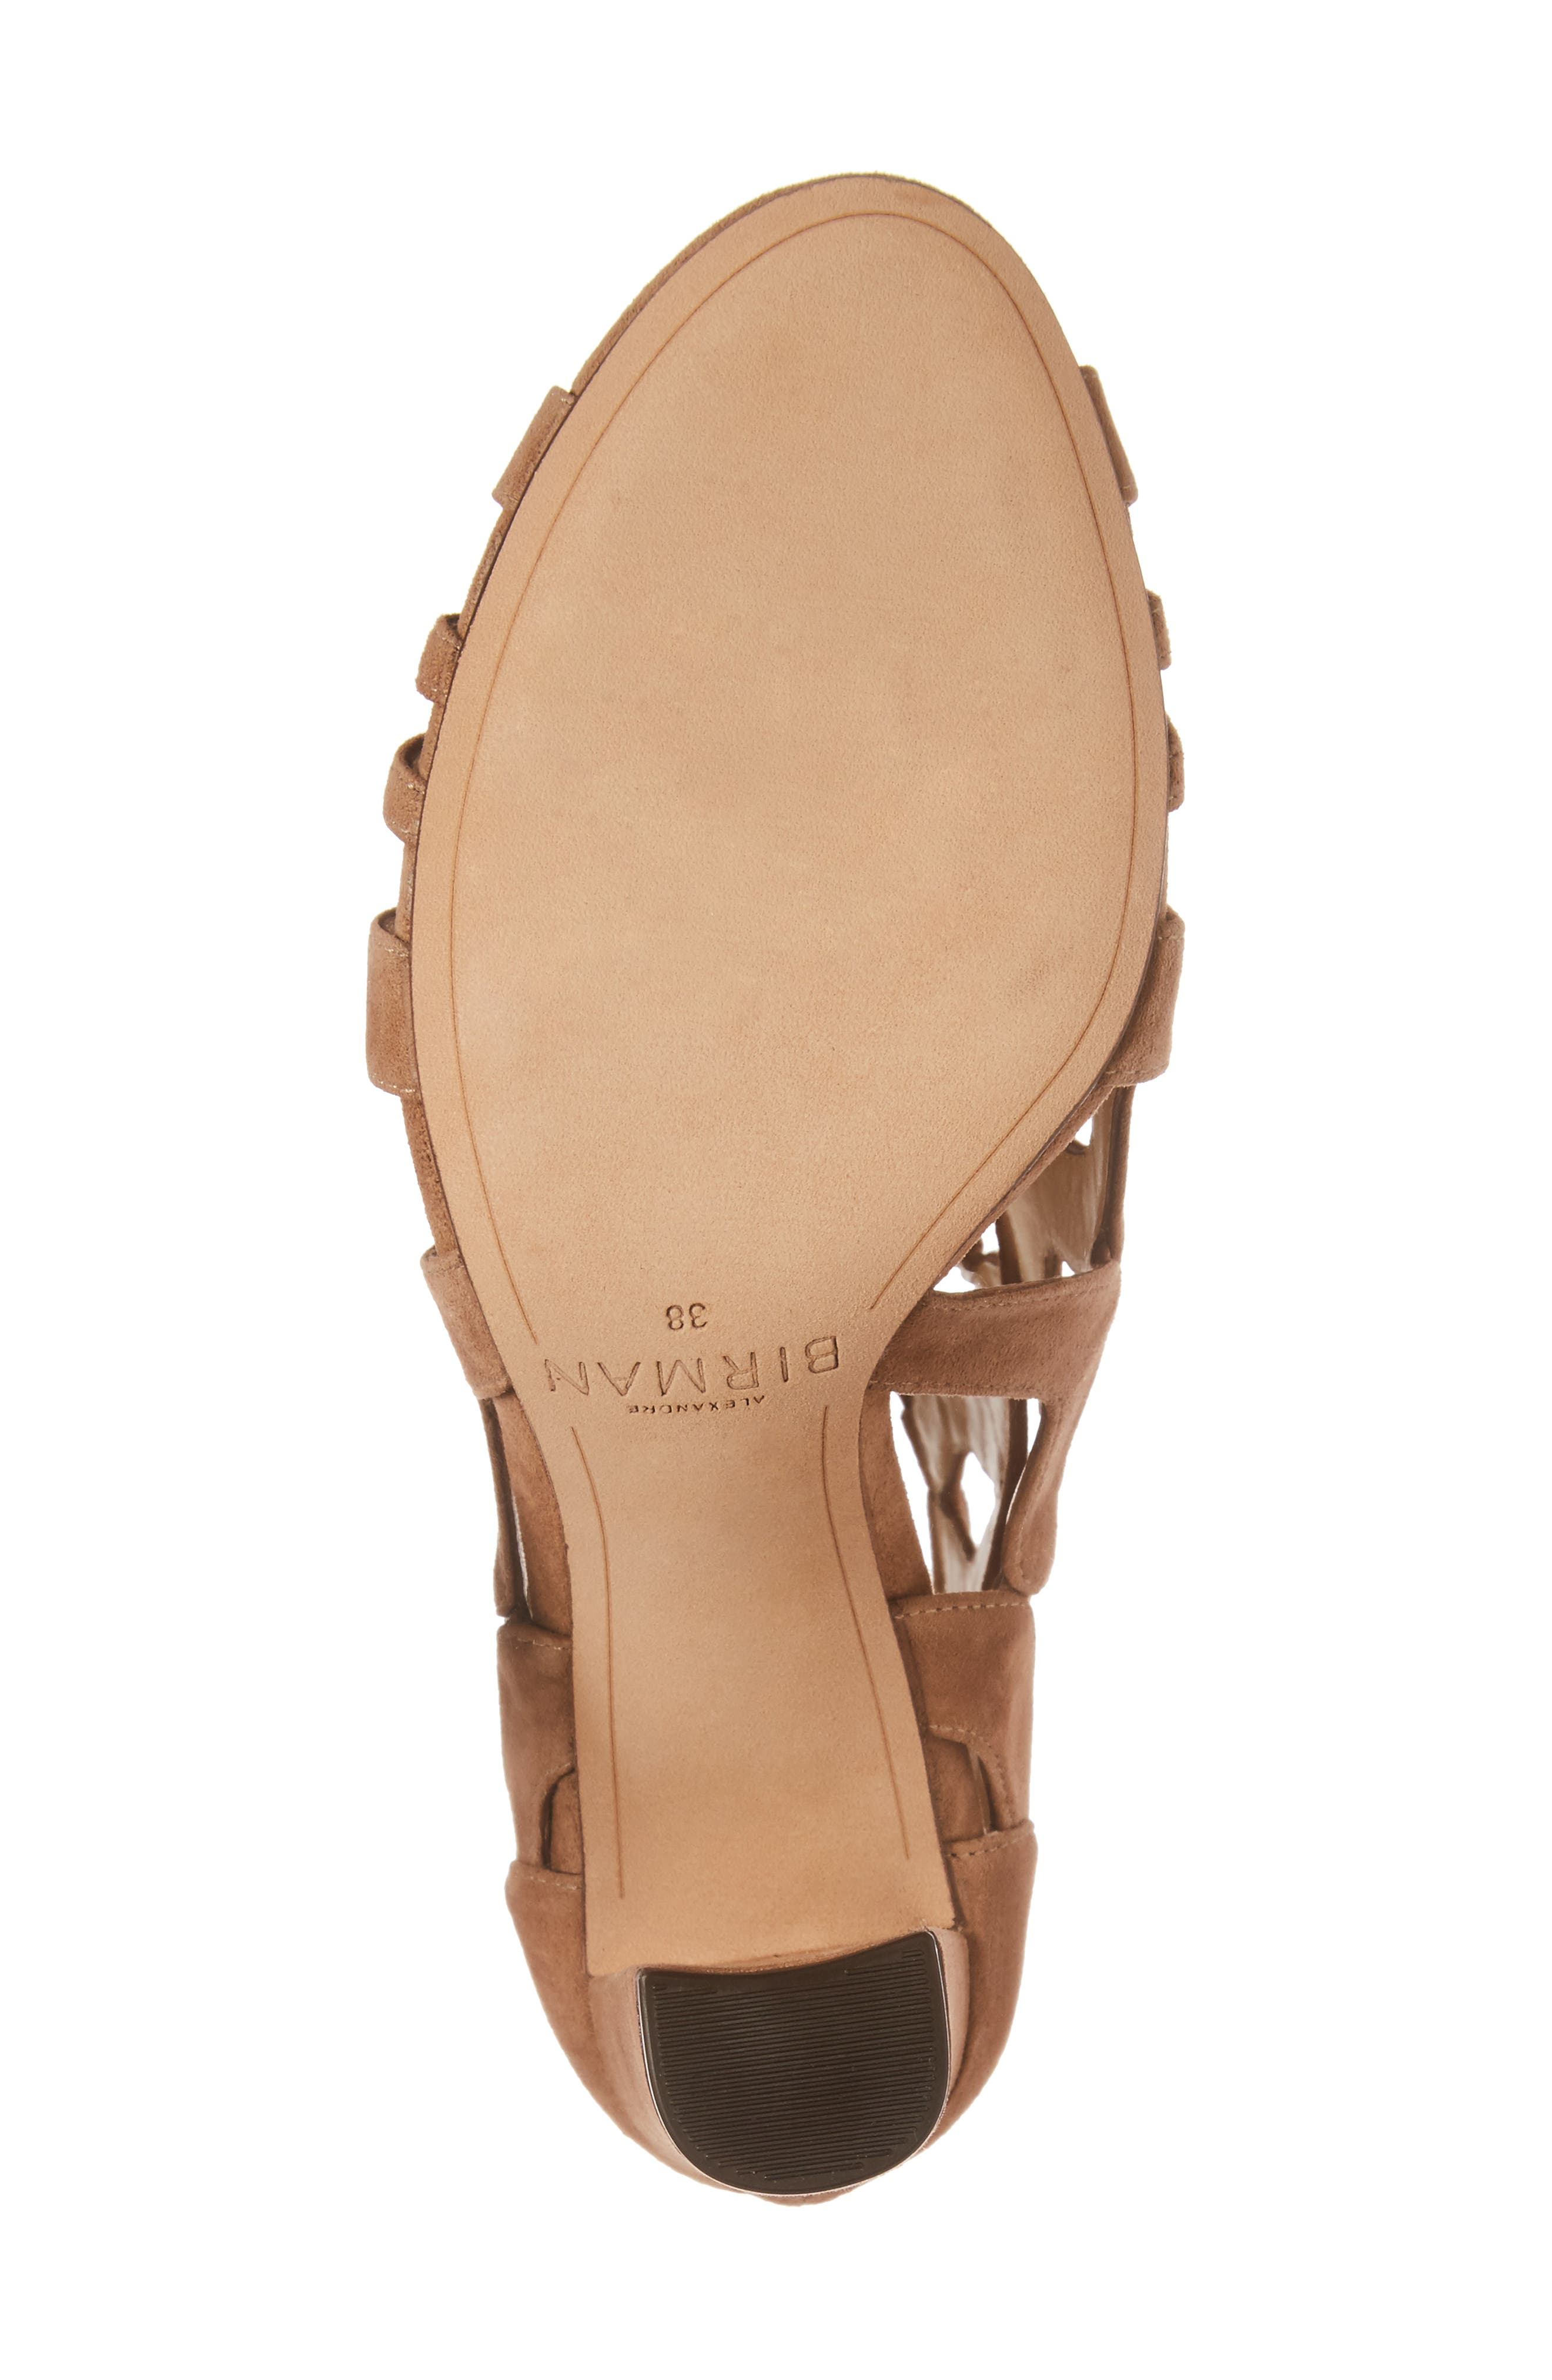 Loretta Cage Bootie,                             Alternate thumbnail 6, color,                             Light Beige